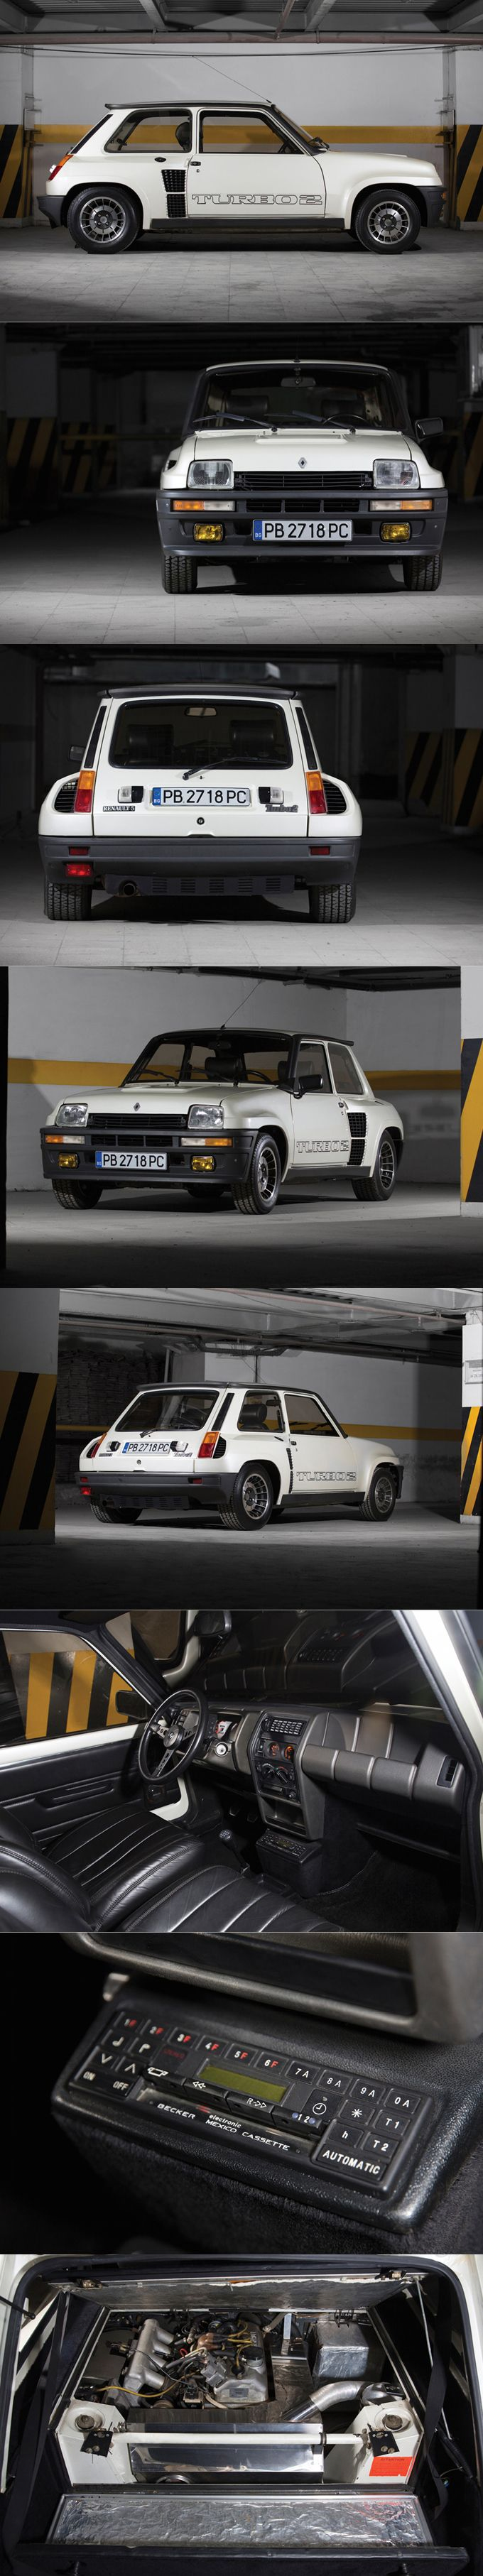 1983 Renault 5 Turbo II / homologation WRC / 158hp / white / France / Marcello Gandini